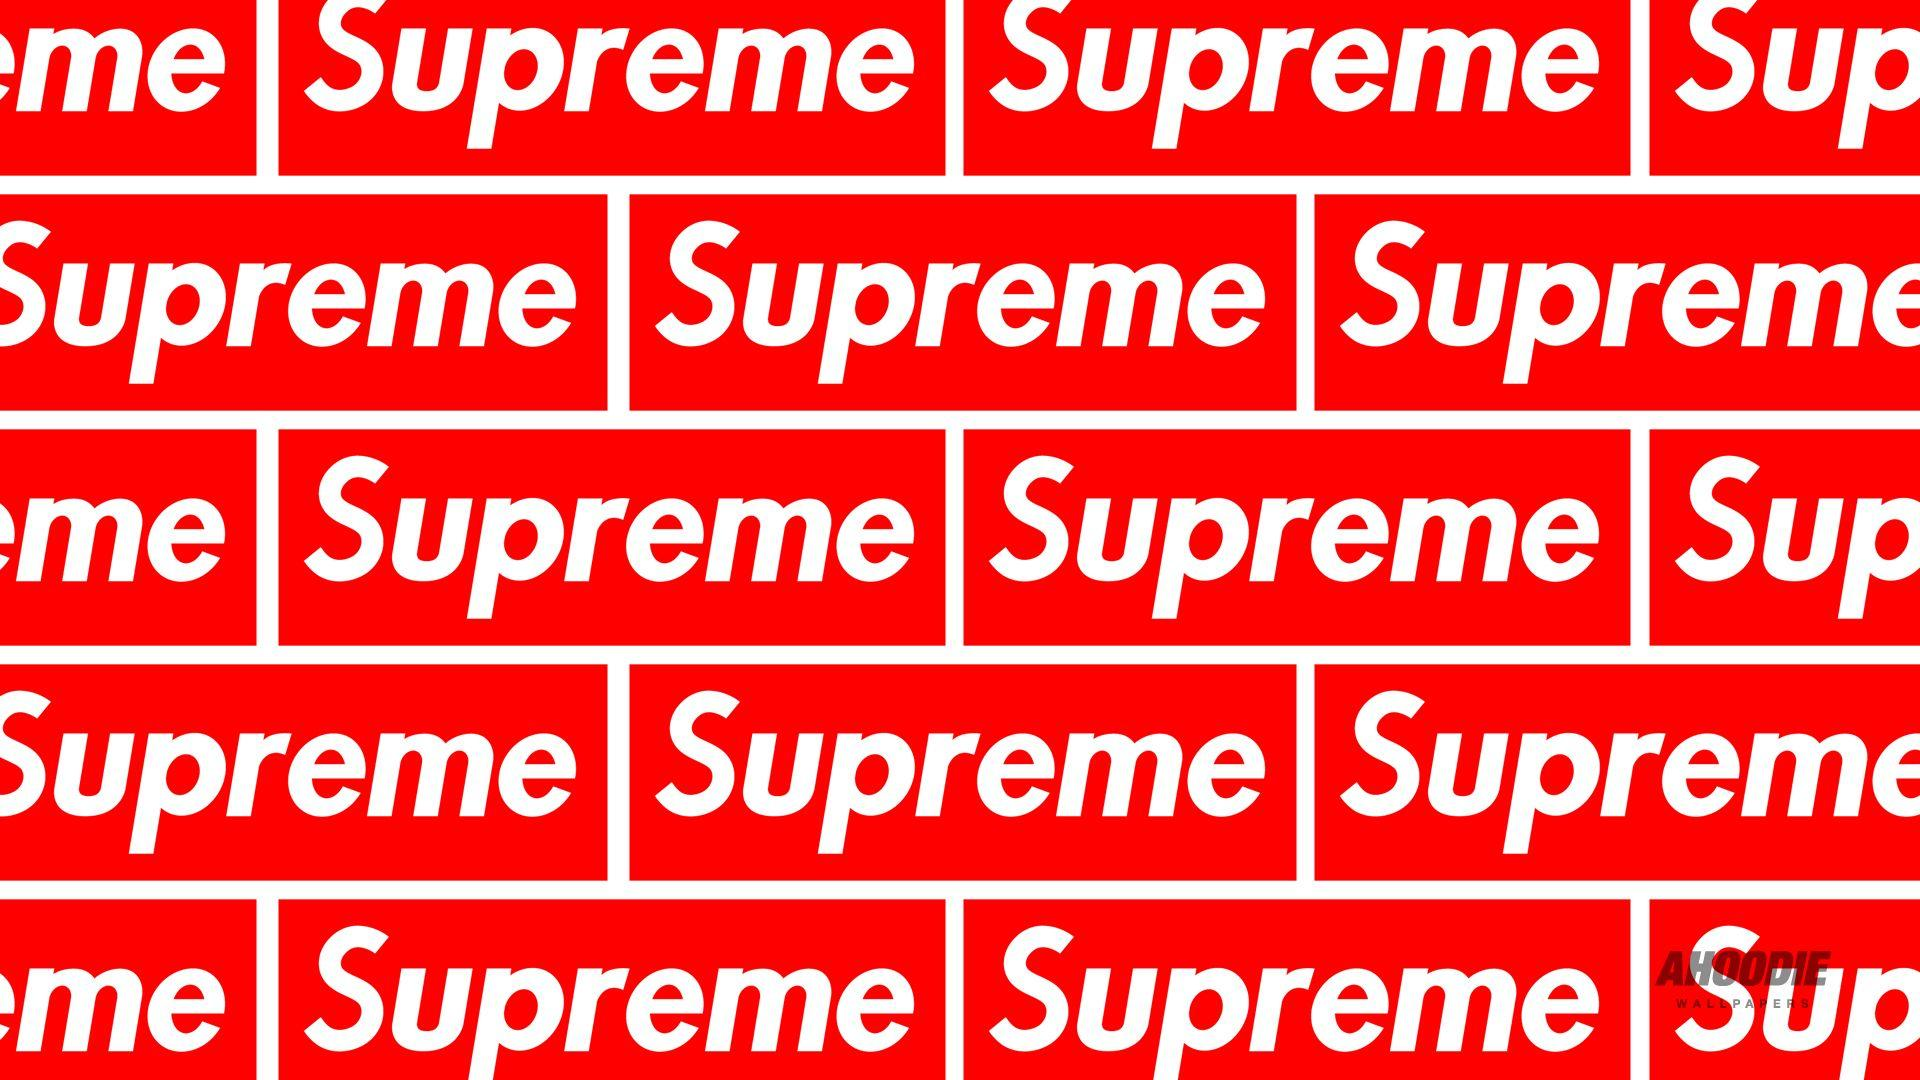 Supreme Wallpaper Wallpapersafari - Supreme Logo Pattern , HD Wallpaper & Backgrounds